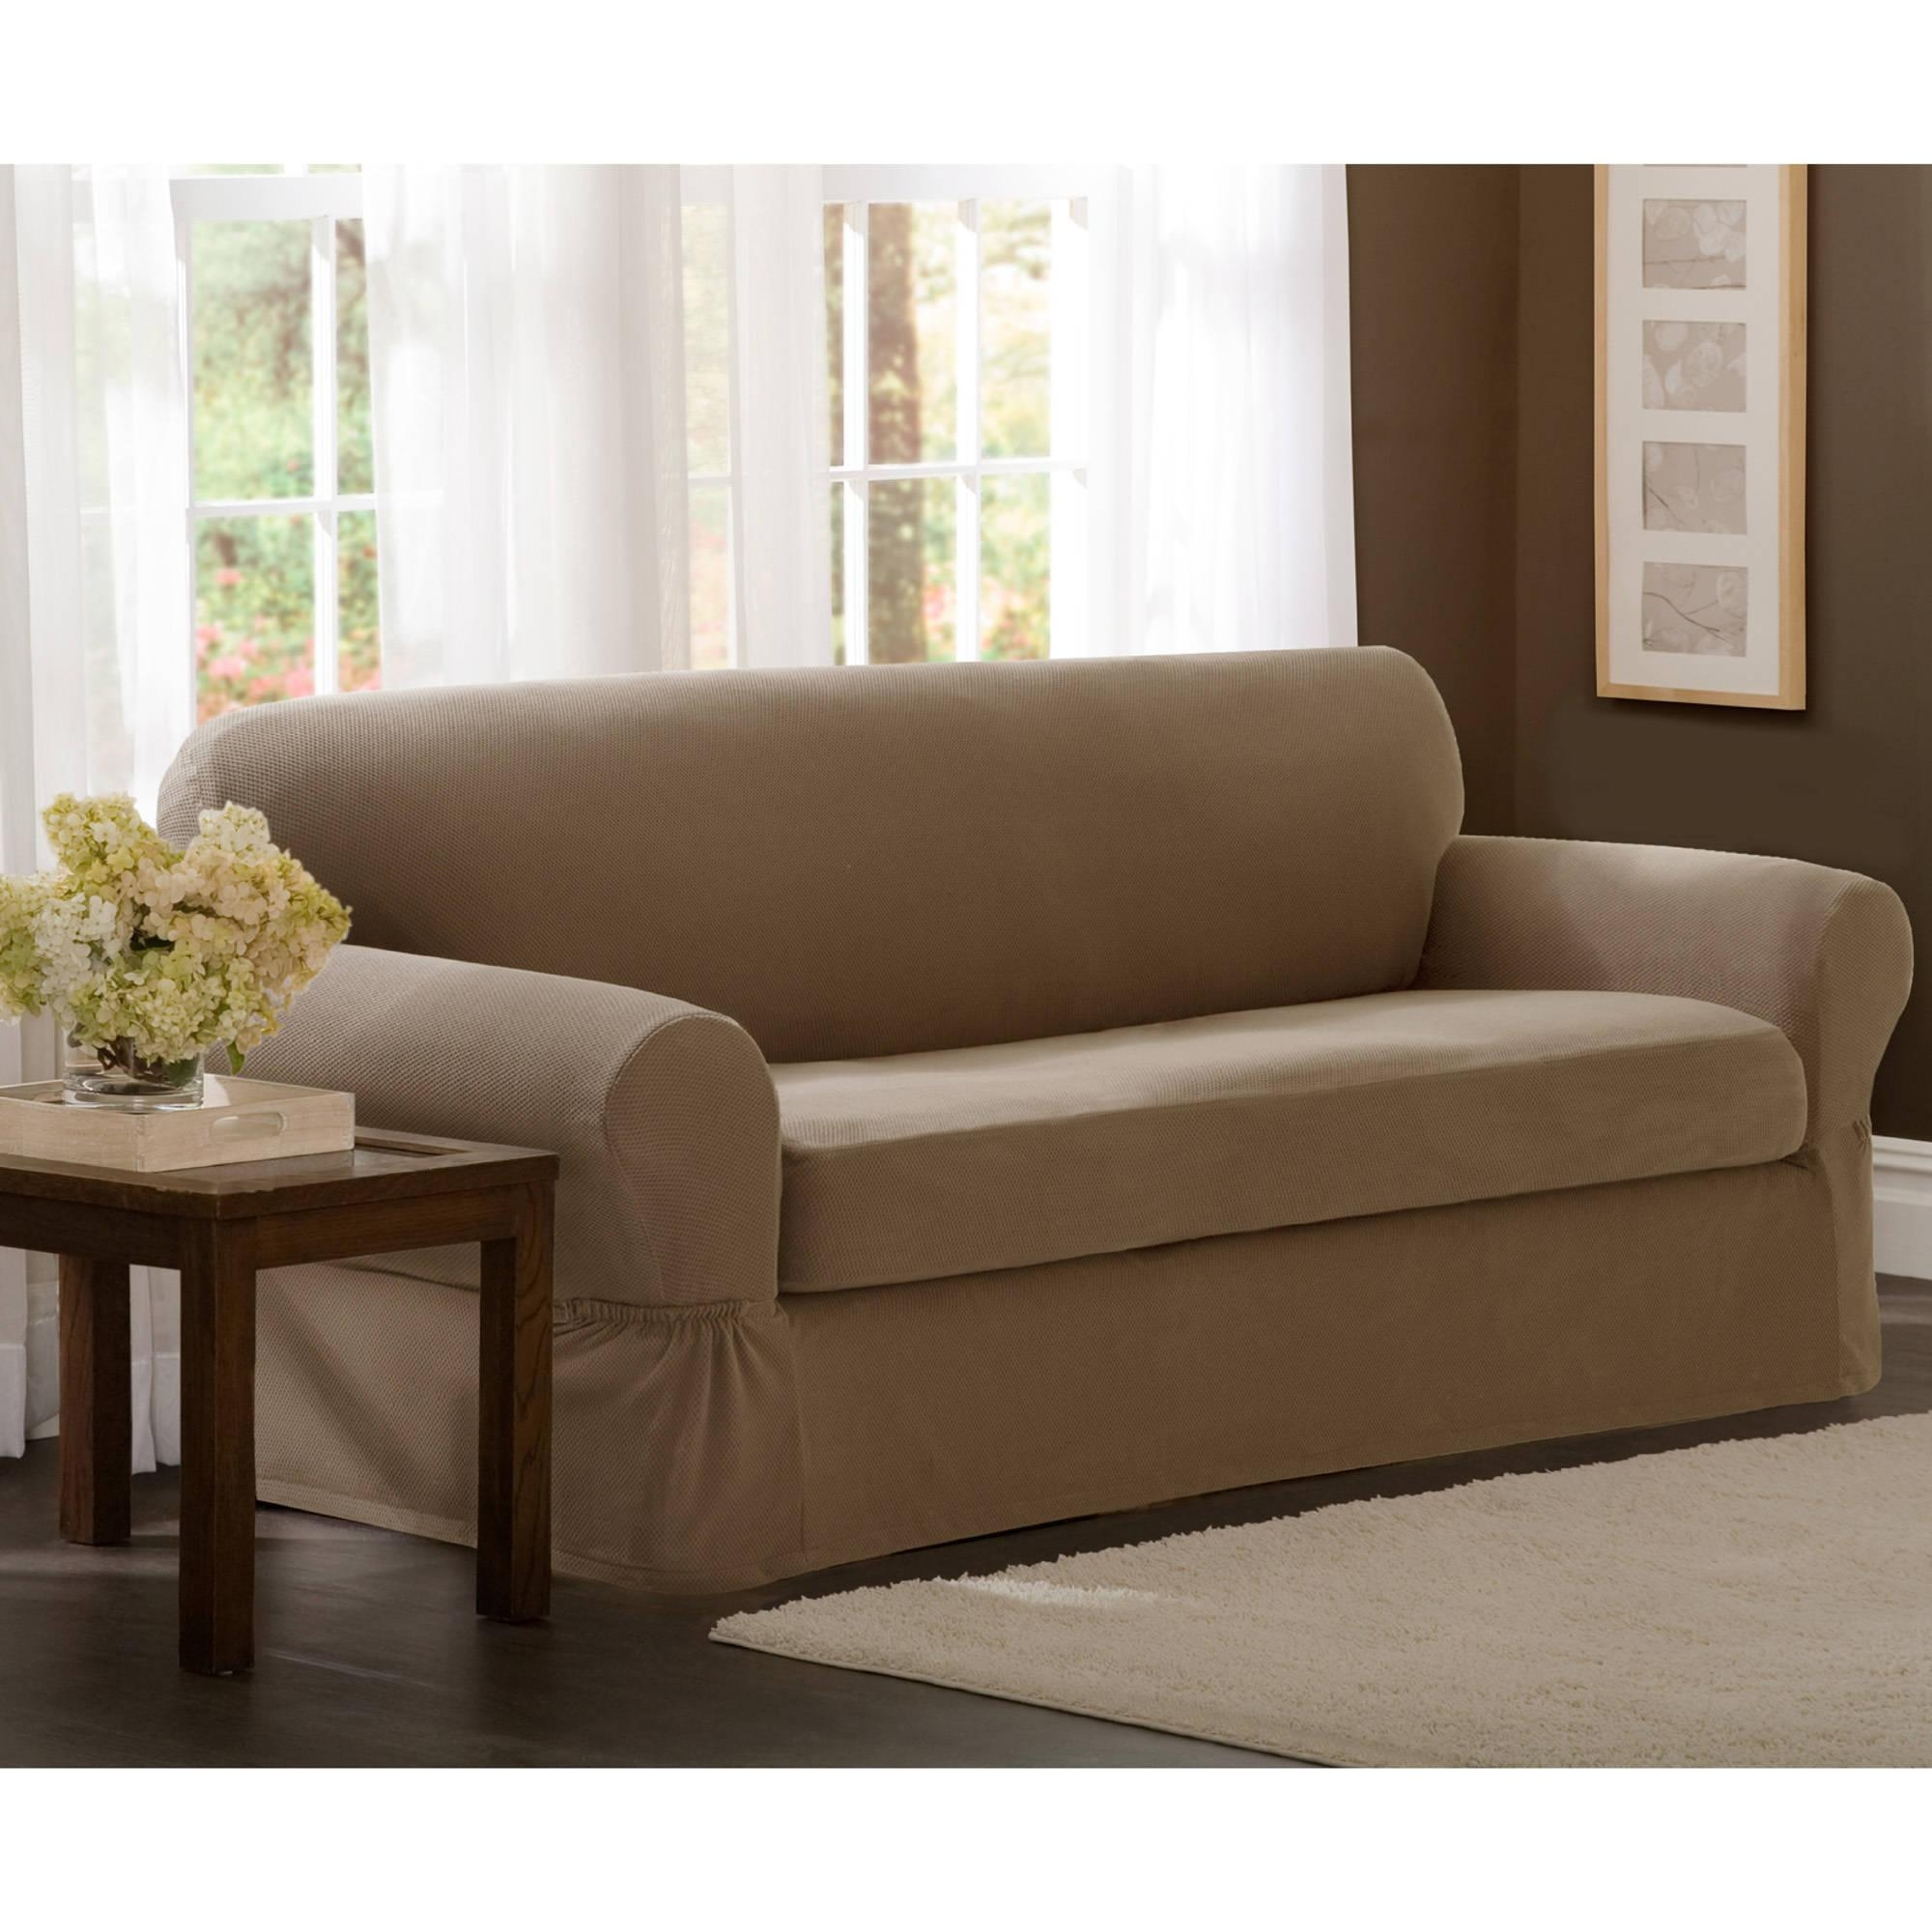 Maytex Stretch 2 Piece Sofa Slipcover – Walmart In 2 Piece Sofa Covers (Image 12 of 27)